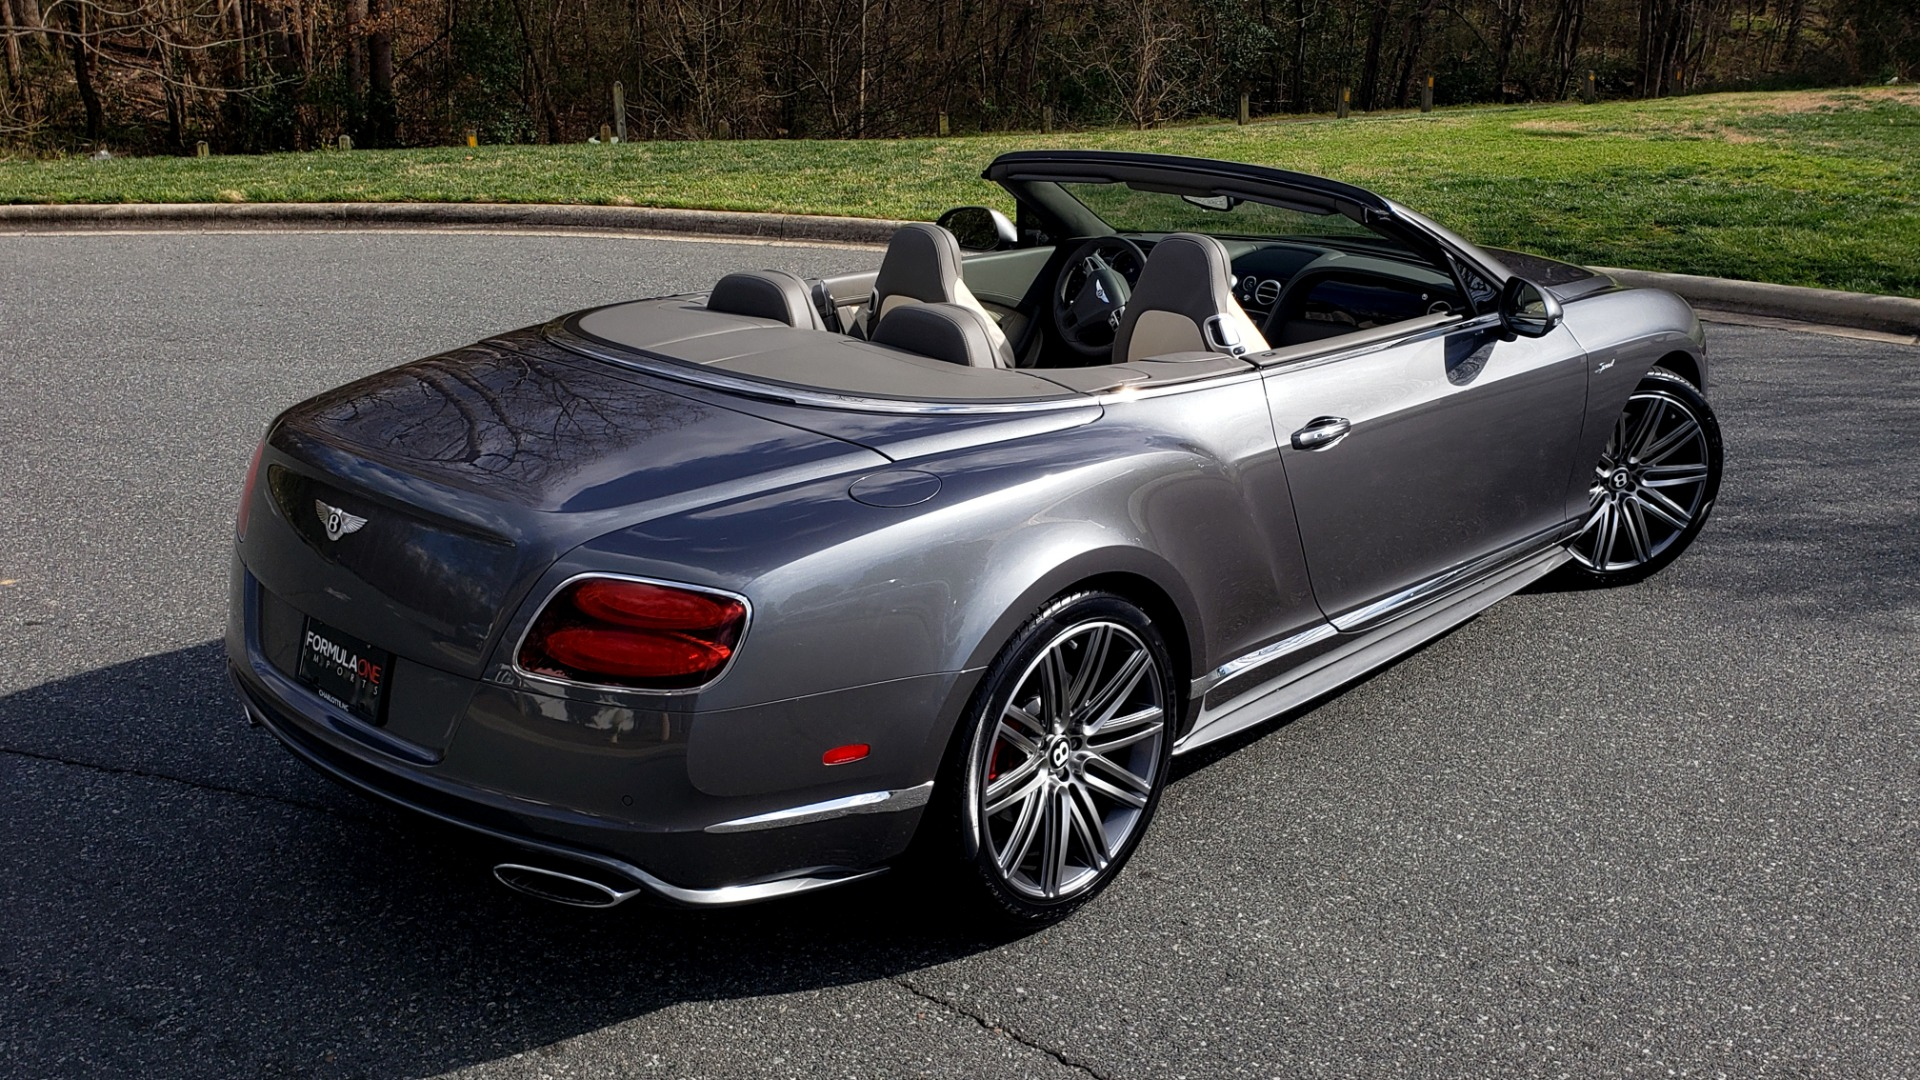 Used 2015 Bentley CONTINENTAL SPEED CONV / 6.0L W12 / NAV / VENT SEATS / REARVIEW for sale Sold at Formula Imports in Charlotte NC 28227 11